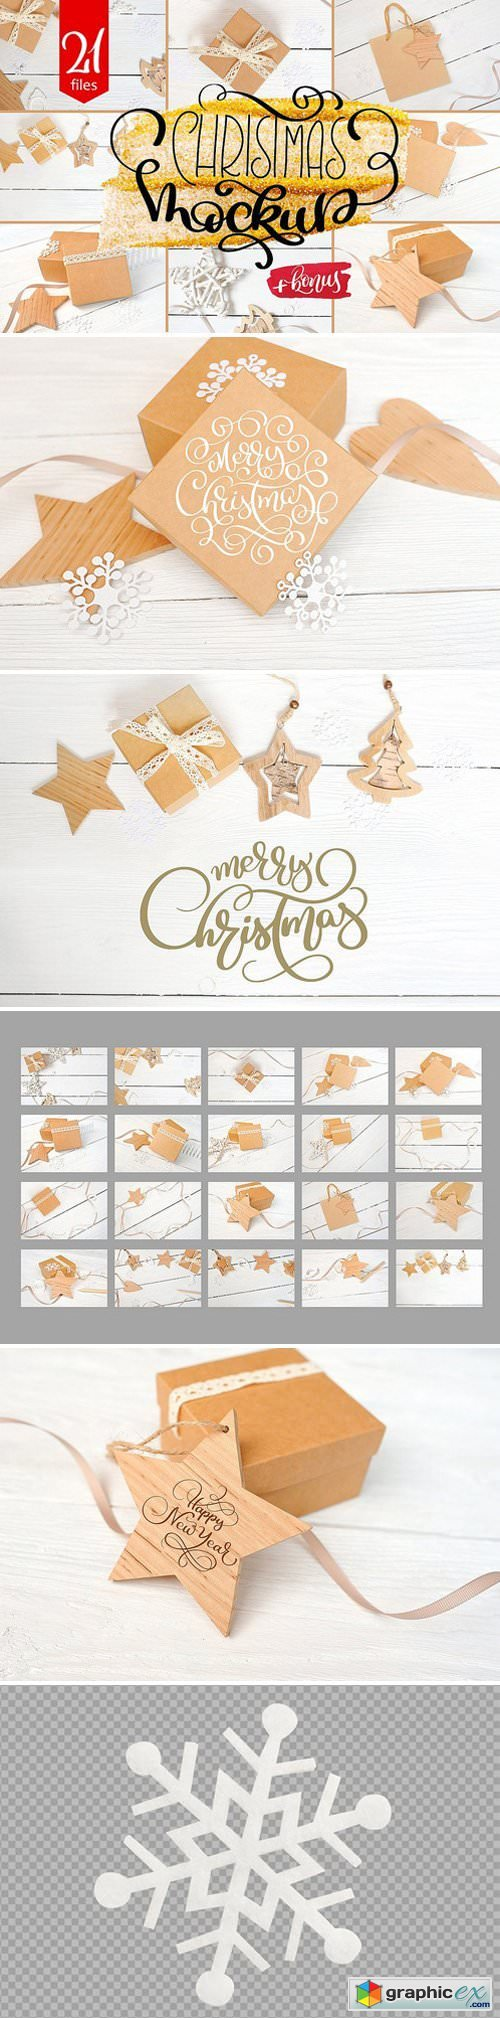 Christmas Mock Up Photos Collection